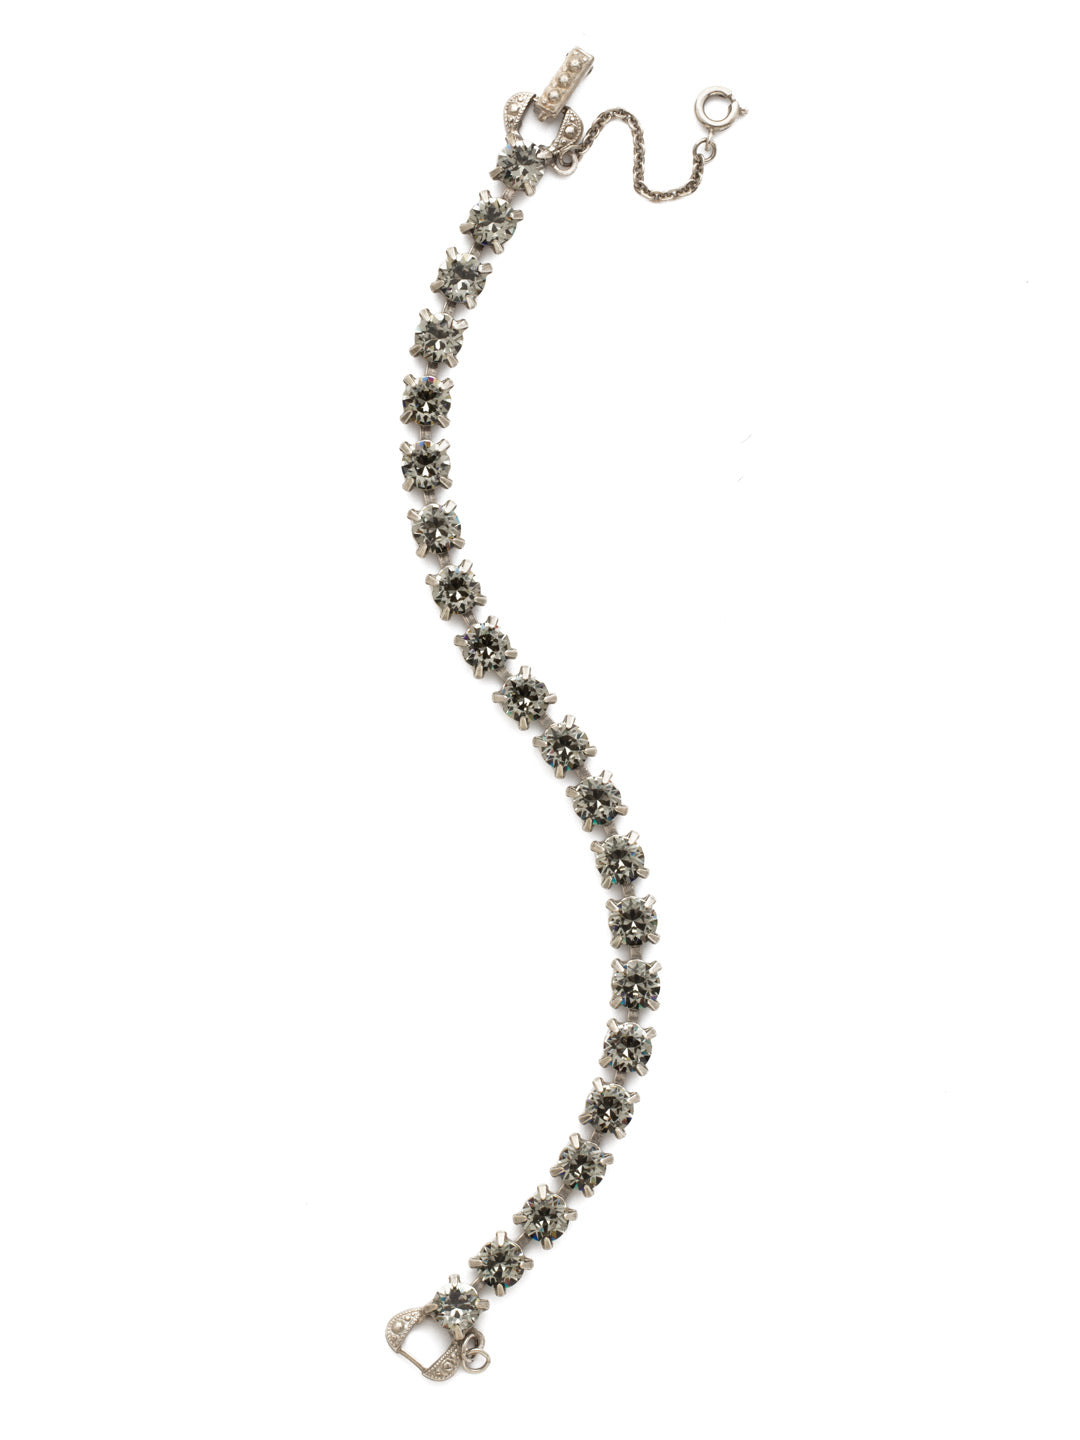 Repeating Round Tennis Bracelet - BCZ36ASBD